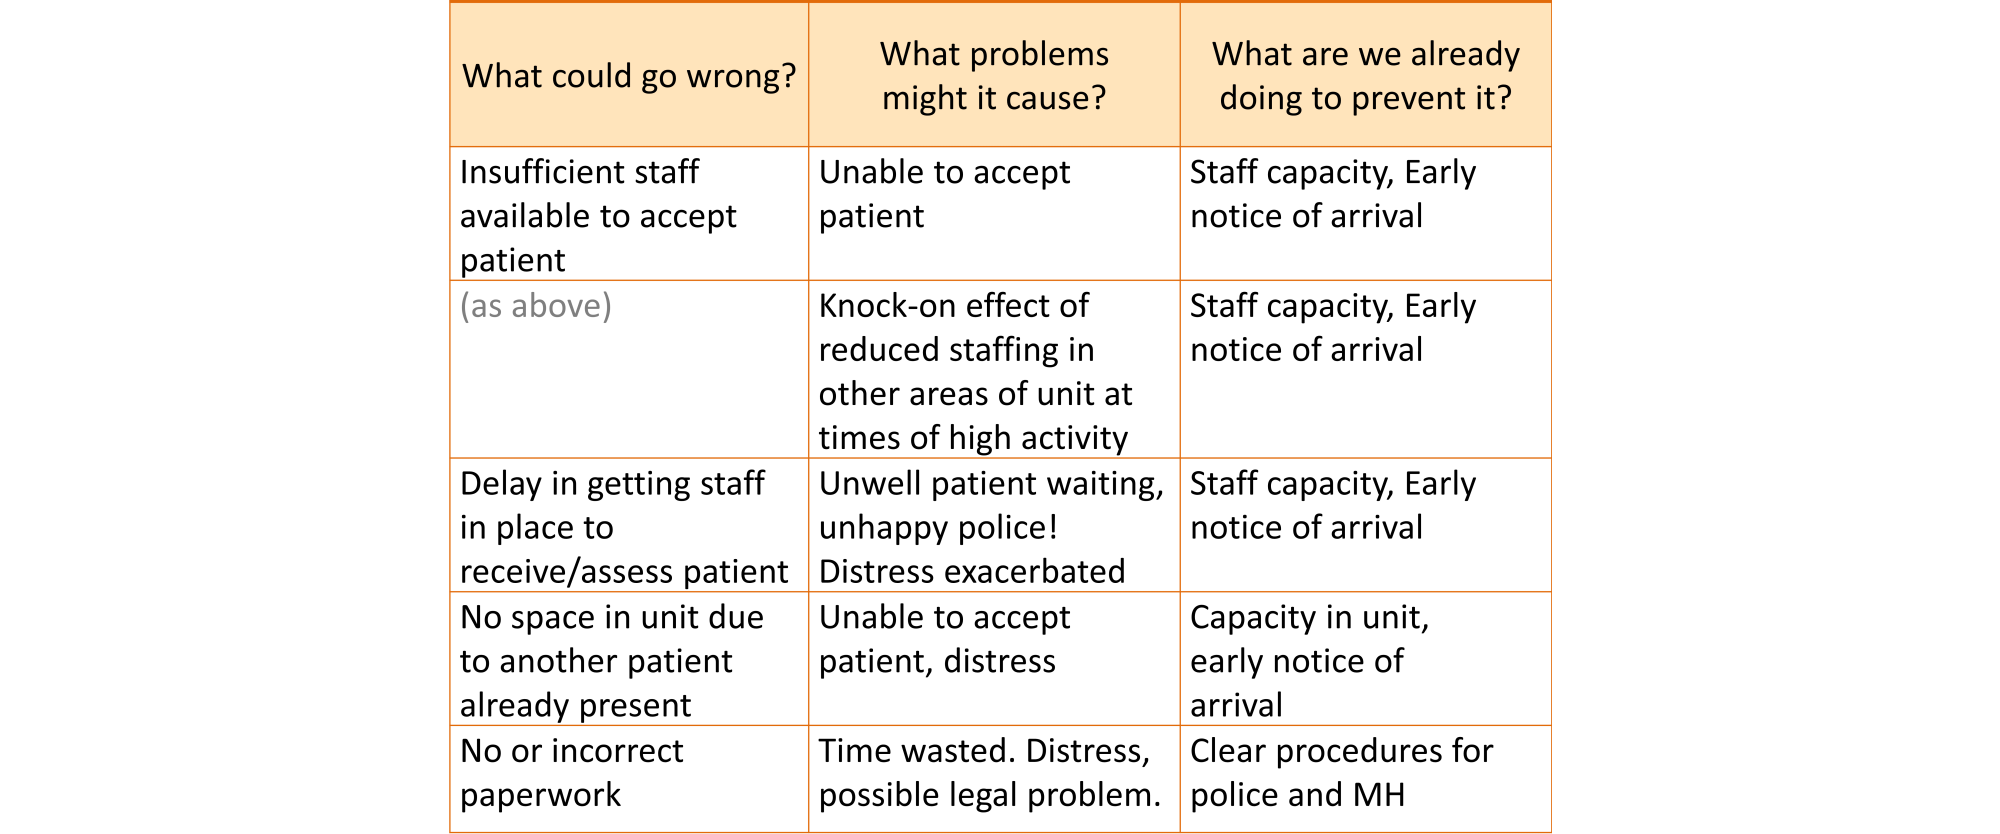 Portion of a risk table, showing some of the measures already being taken to prevent problems from arising and to reduce their impact and likelihood. For example, something that might go wrong is that there is insufficient staff available to accept a patient, leading to being unable to accept the patient or to knock on effect of reduced staffing in other areas of the unit. Measures to address this include increasing staff capacity and providing early notice of a patient's arrival. Another problem is that there may be no space in the unit due to another patient already being present, leading to being unable to accept a patient and resultant distress. Measures to address this include increasing unit capacity and providing early notice of arrival. Another possible problem is no or incorrect paperwork leading to time being wasted, distress and possible legal problems. A measure to address this is clear procedures for police and mental health.